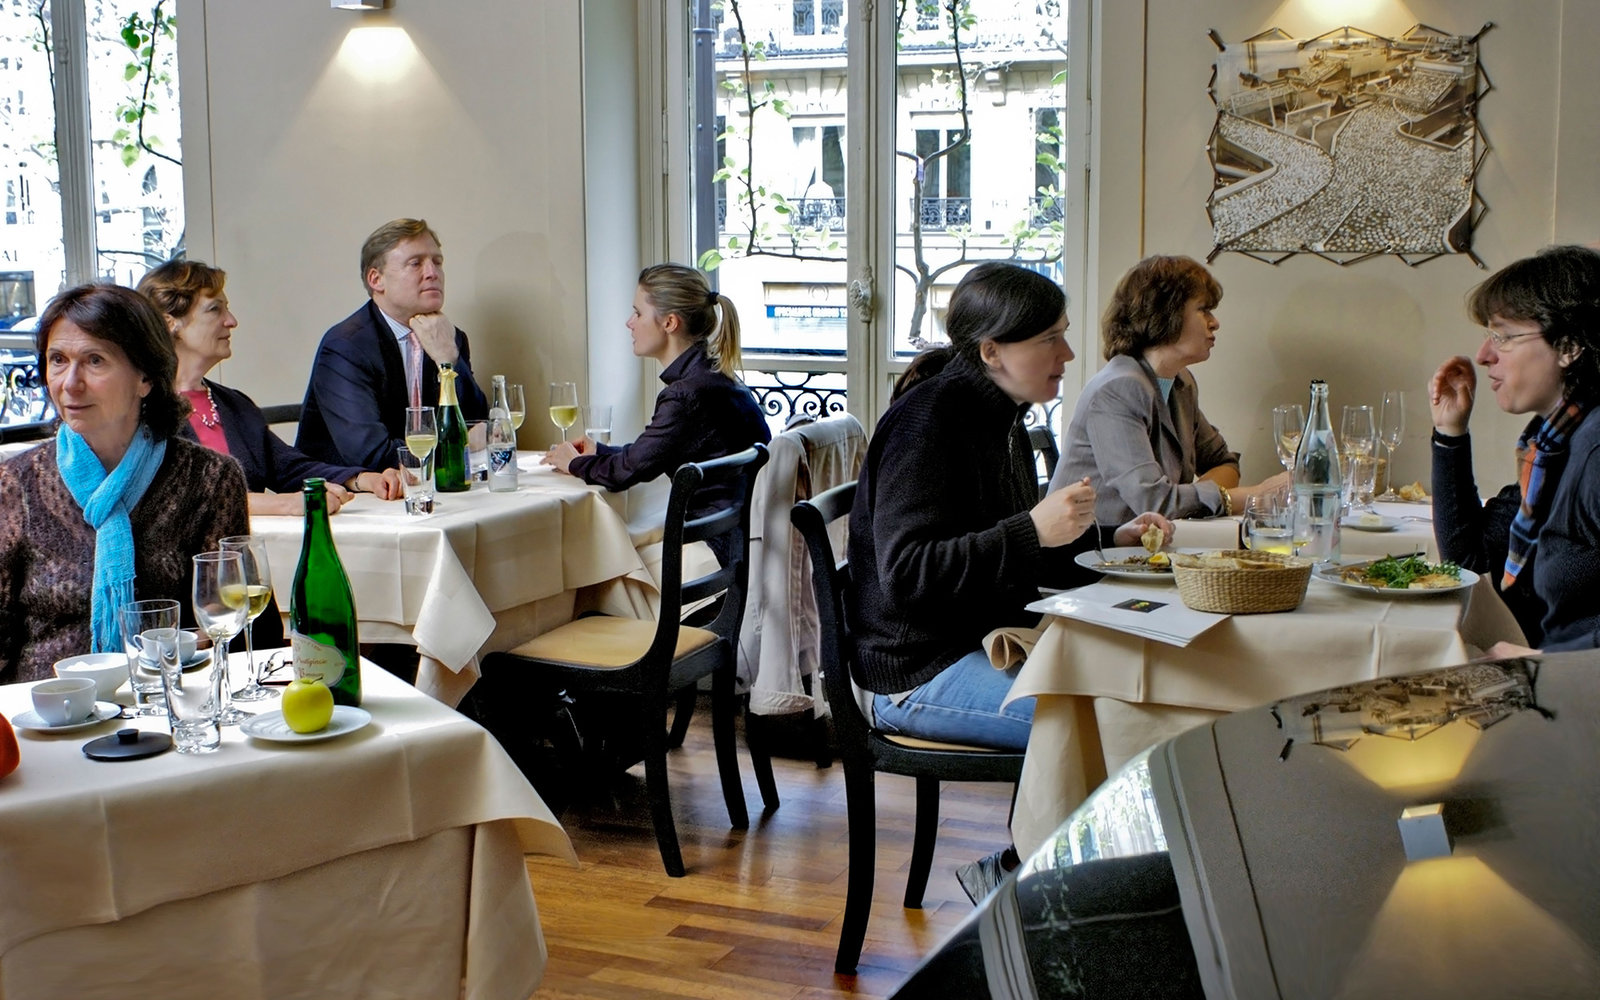 BKEX5J Paris, France ,Bistro Restaurant,, Pomze, people Eating Lunch, 1st Floor, Dining Room,